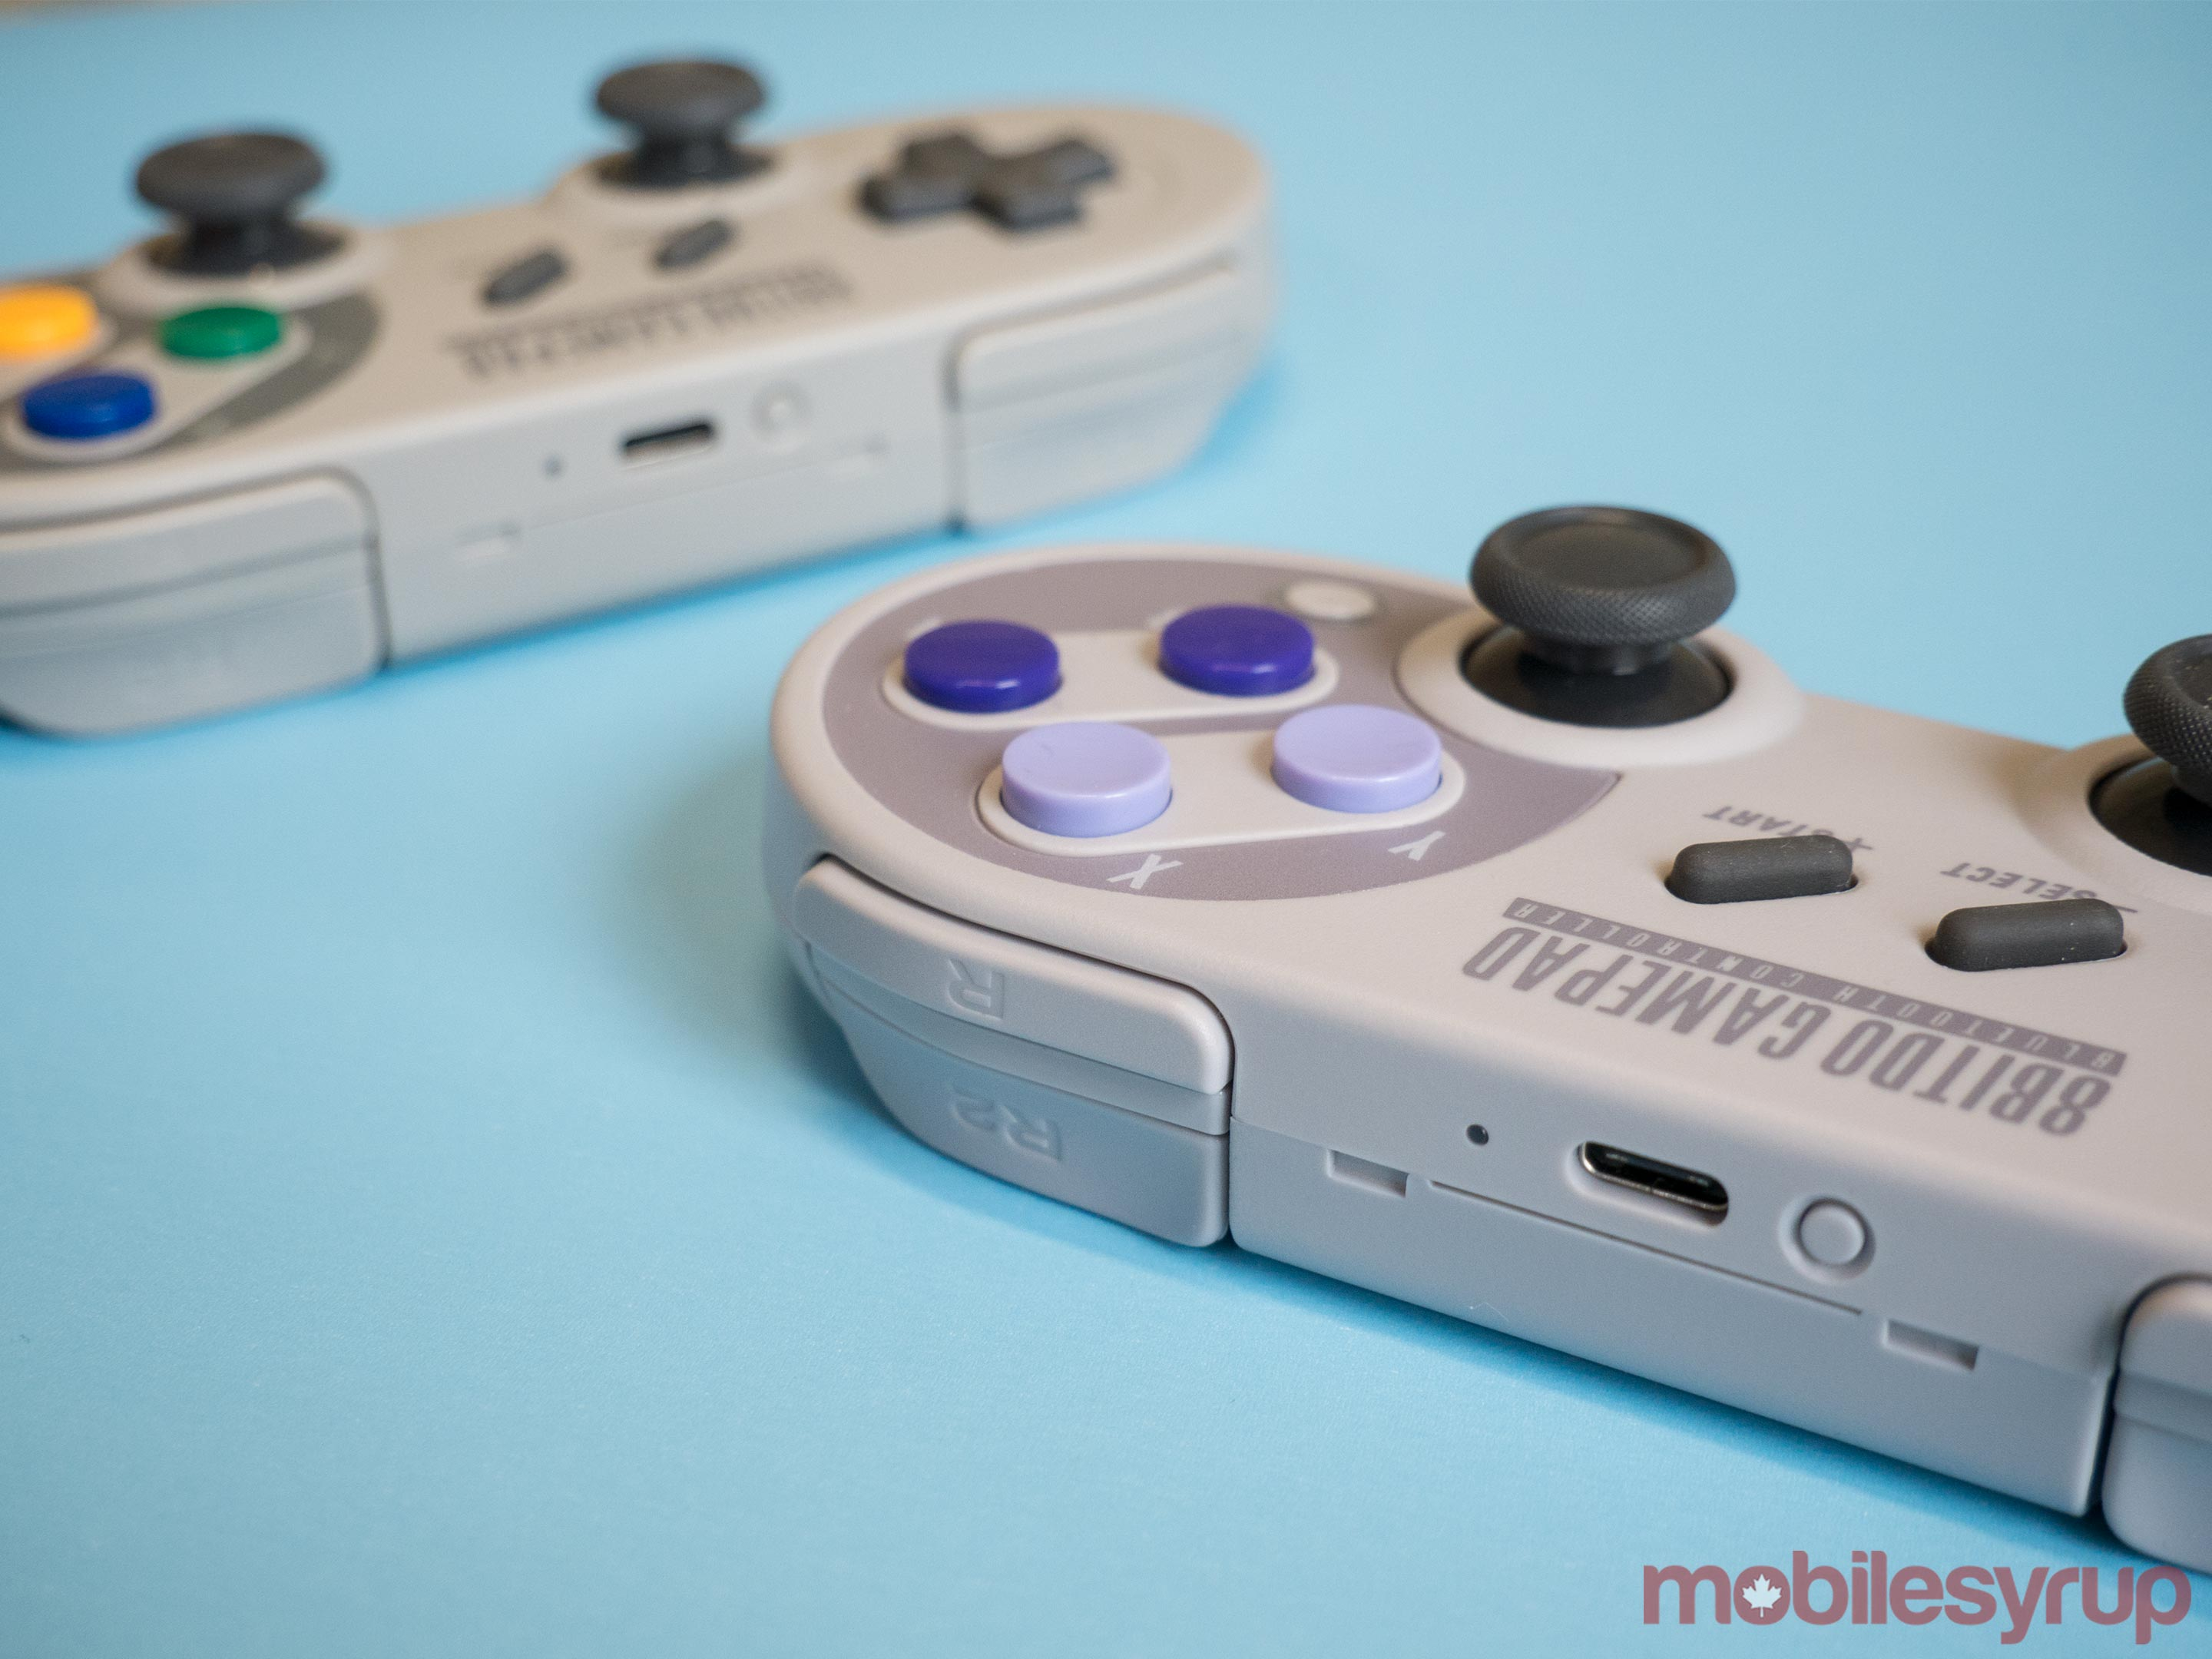 8bitdo's SN30 and SF30 Pro controller from a side view